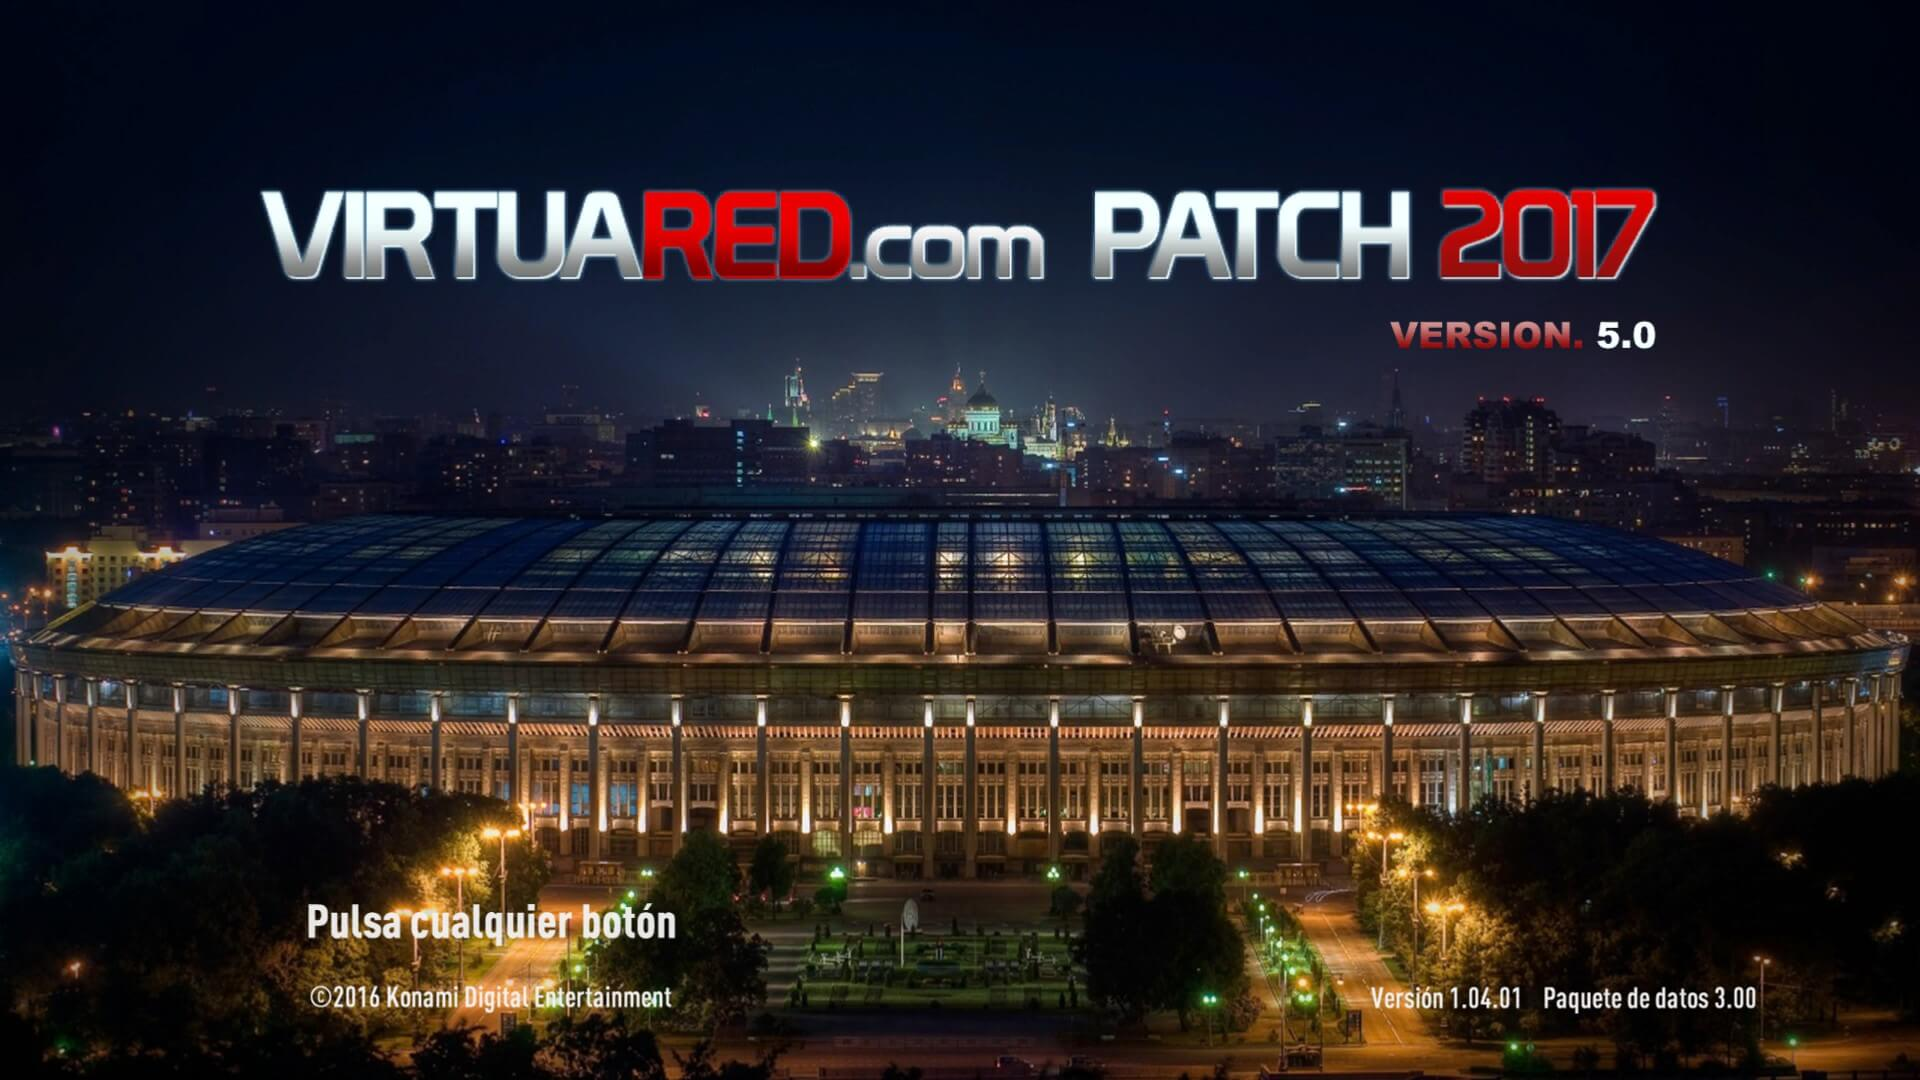 VirtuaRED.com Patch 2017 v5 ¡¡YA DISPONIBLE!!